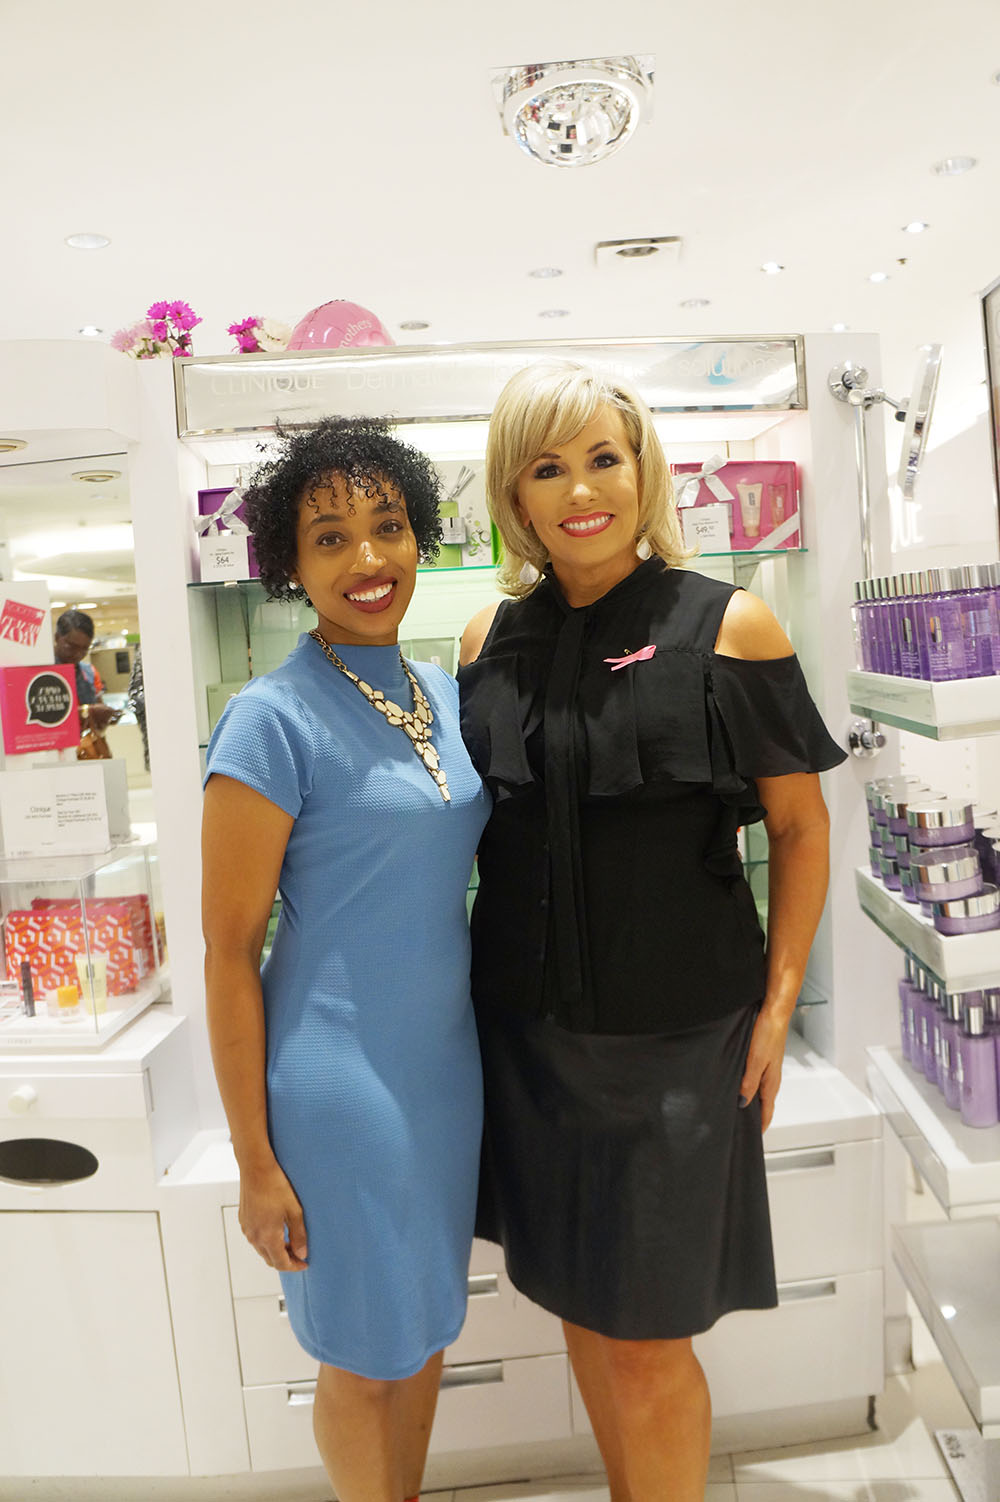 Andrea Fenise Memphis Fashion Blogger covers Macy's Oak Court Come As You Art Beauty Event